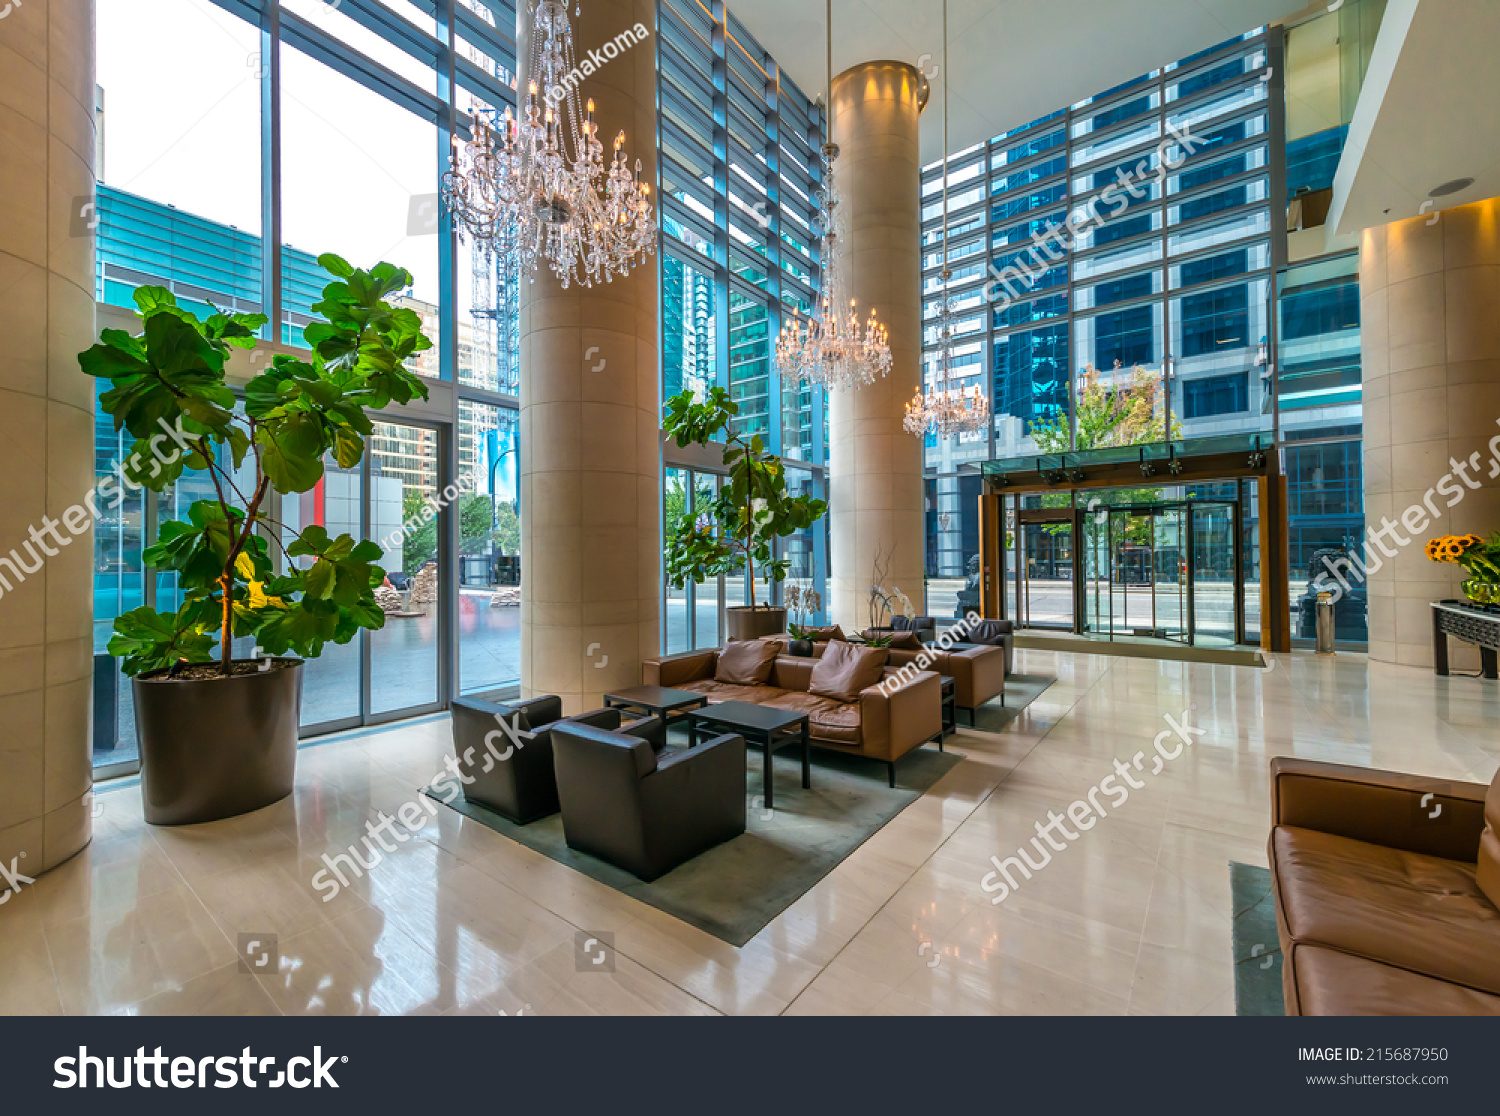 Modern Lobby, Hallway, Plaza Of The Luxury Hotel, Shopping Mall, Business Center In Vancouver